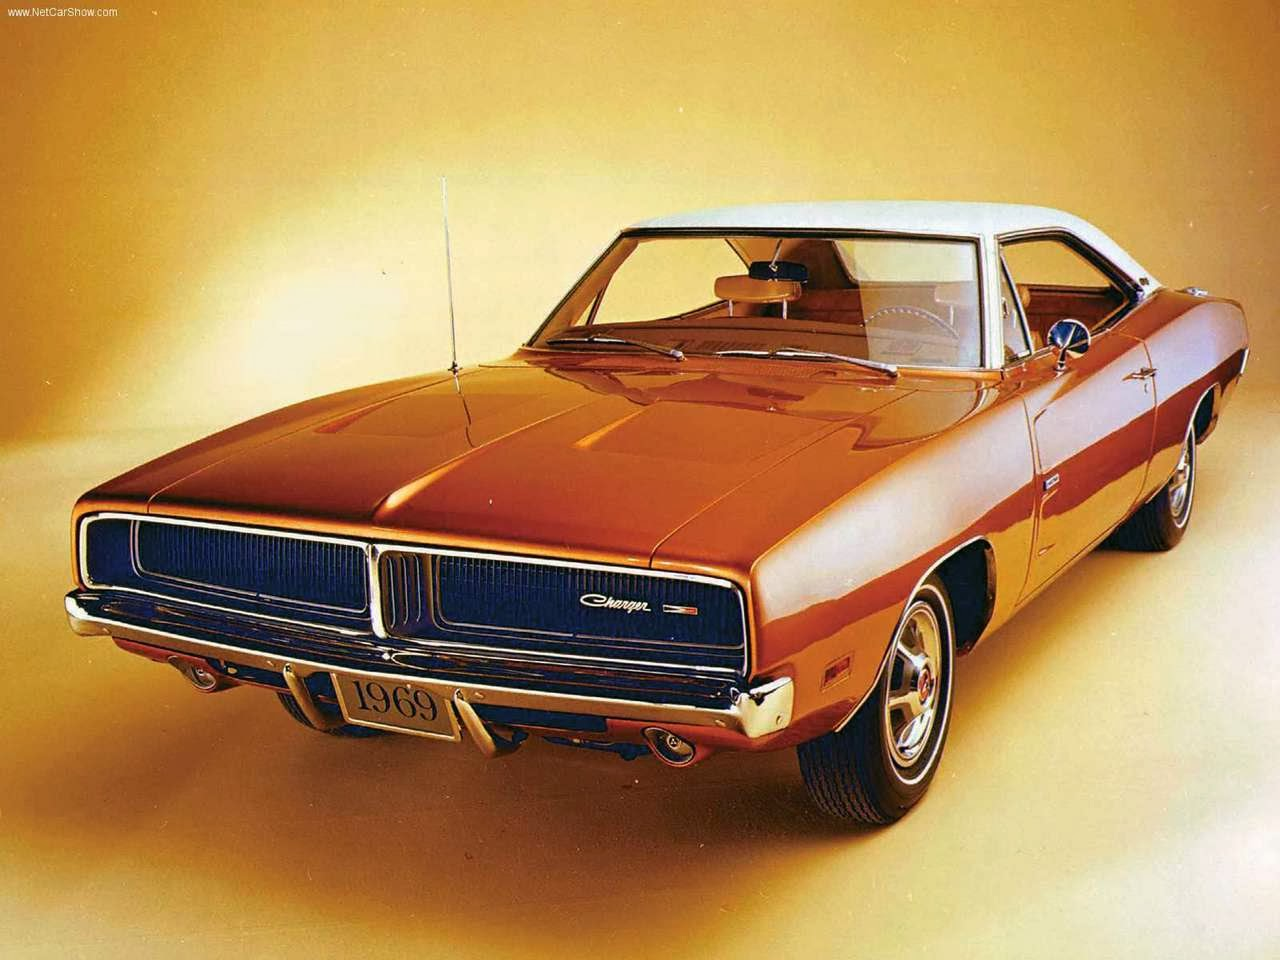 The Best Old Muscle cars 1969 Dodge Charger